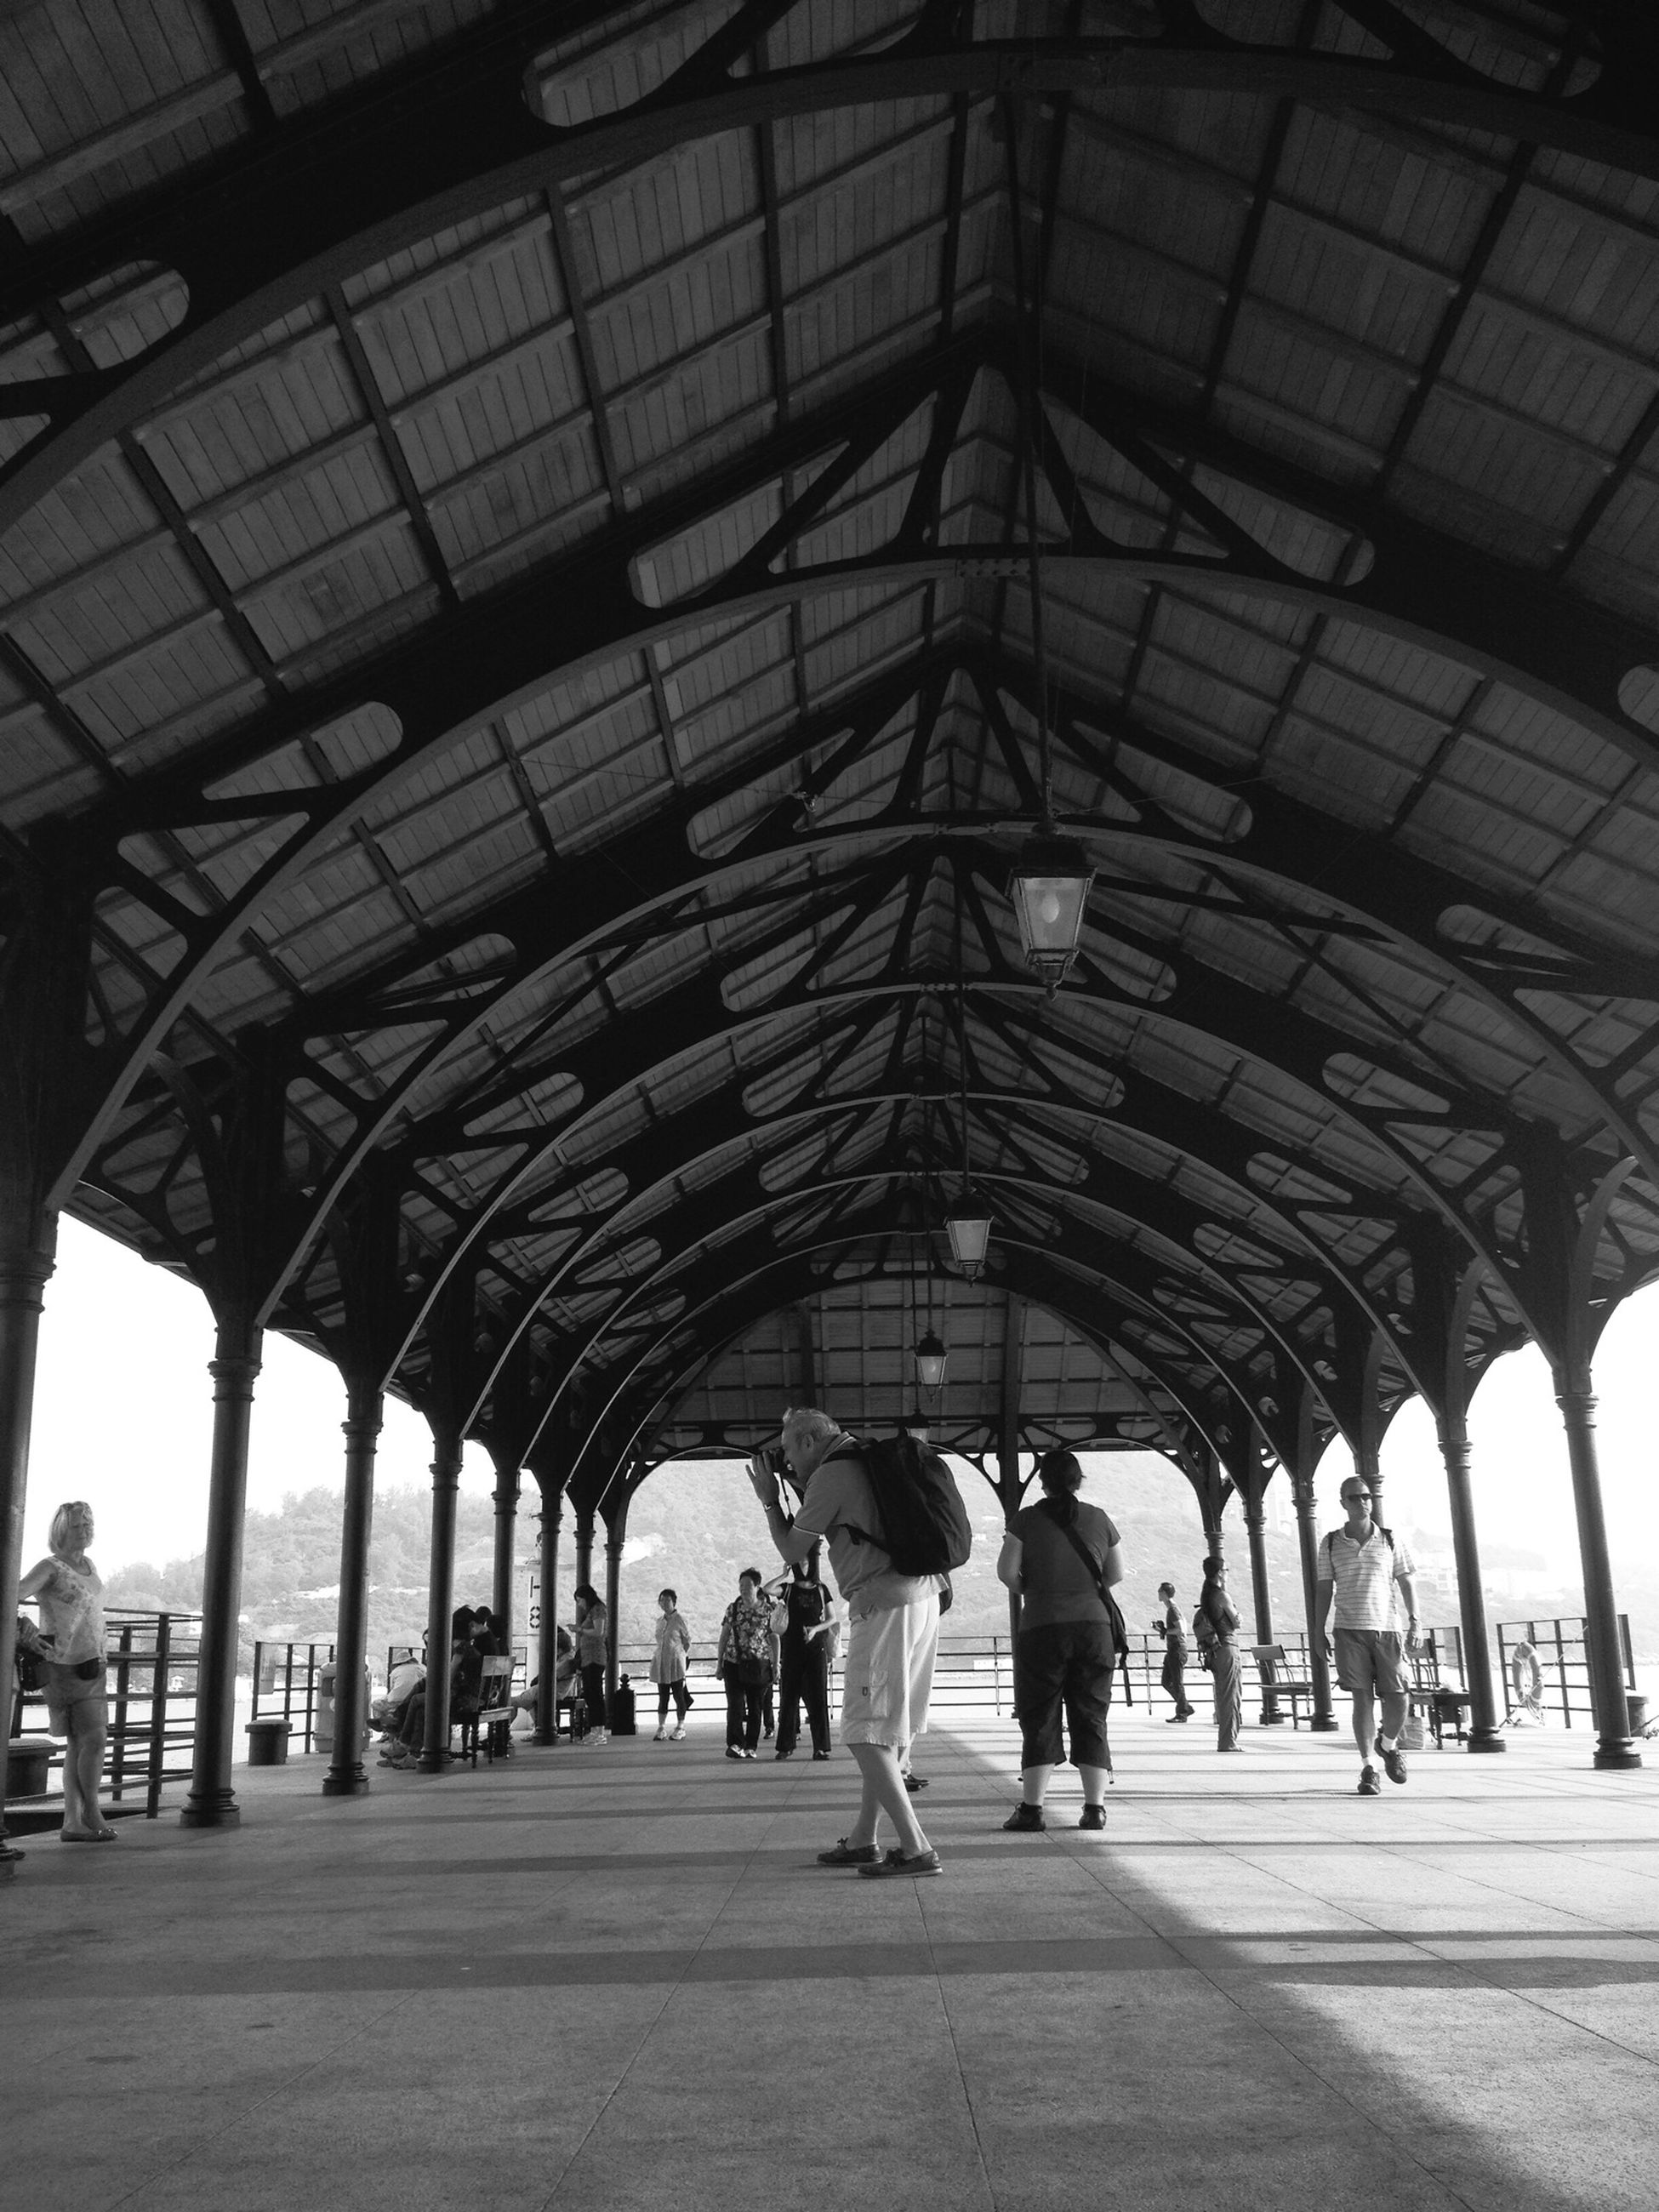 indoors, ceiling, architecture, built structure, men, arch, person, large group of people, the way forward, walking, lifestyles, transportation, travel, architectural column, railroad station, diminishing perspective, group of people, incidental people, leisure activity